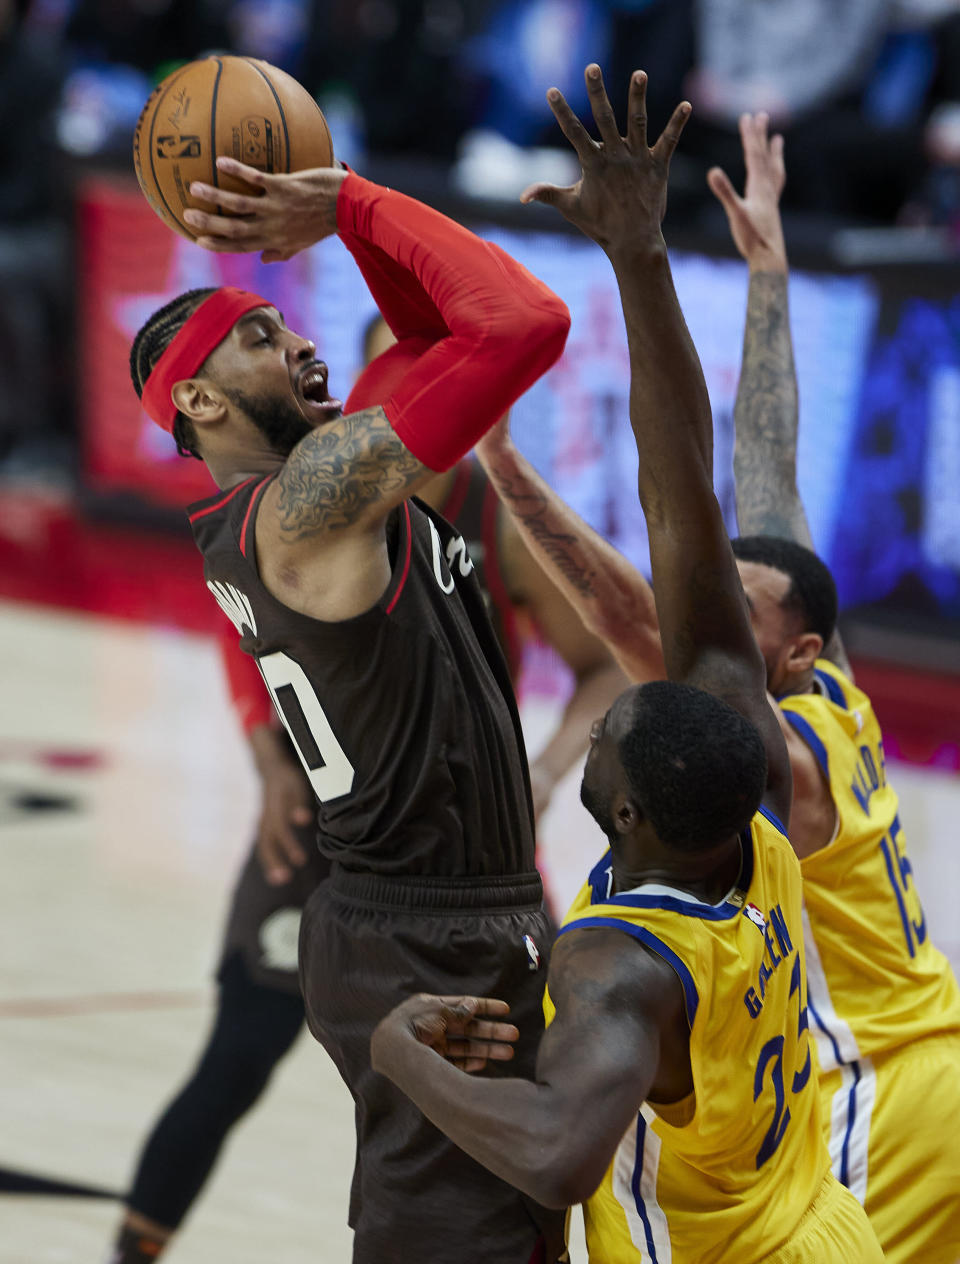 Portland Trail Blazers forward Carmelo Anthony, left, shoots over Golden State Warriors forward Draymond Green, front, and guard Mychal Mulder during the second half of an NBA basketball game in Portland, Ore., Wednesday, March 3, 2021. (AP Photo/Craig Mitchelldyer)